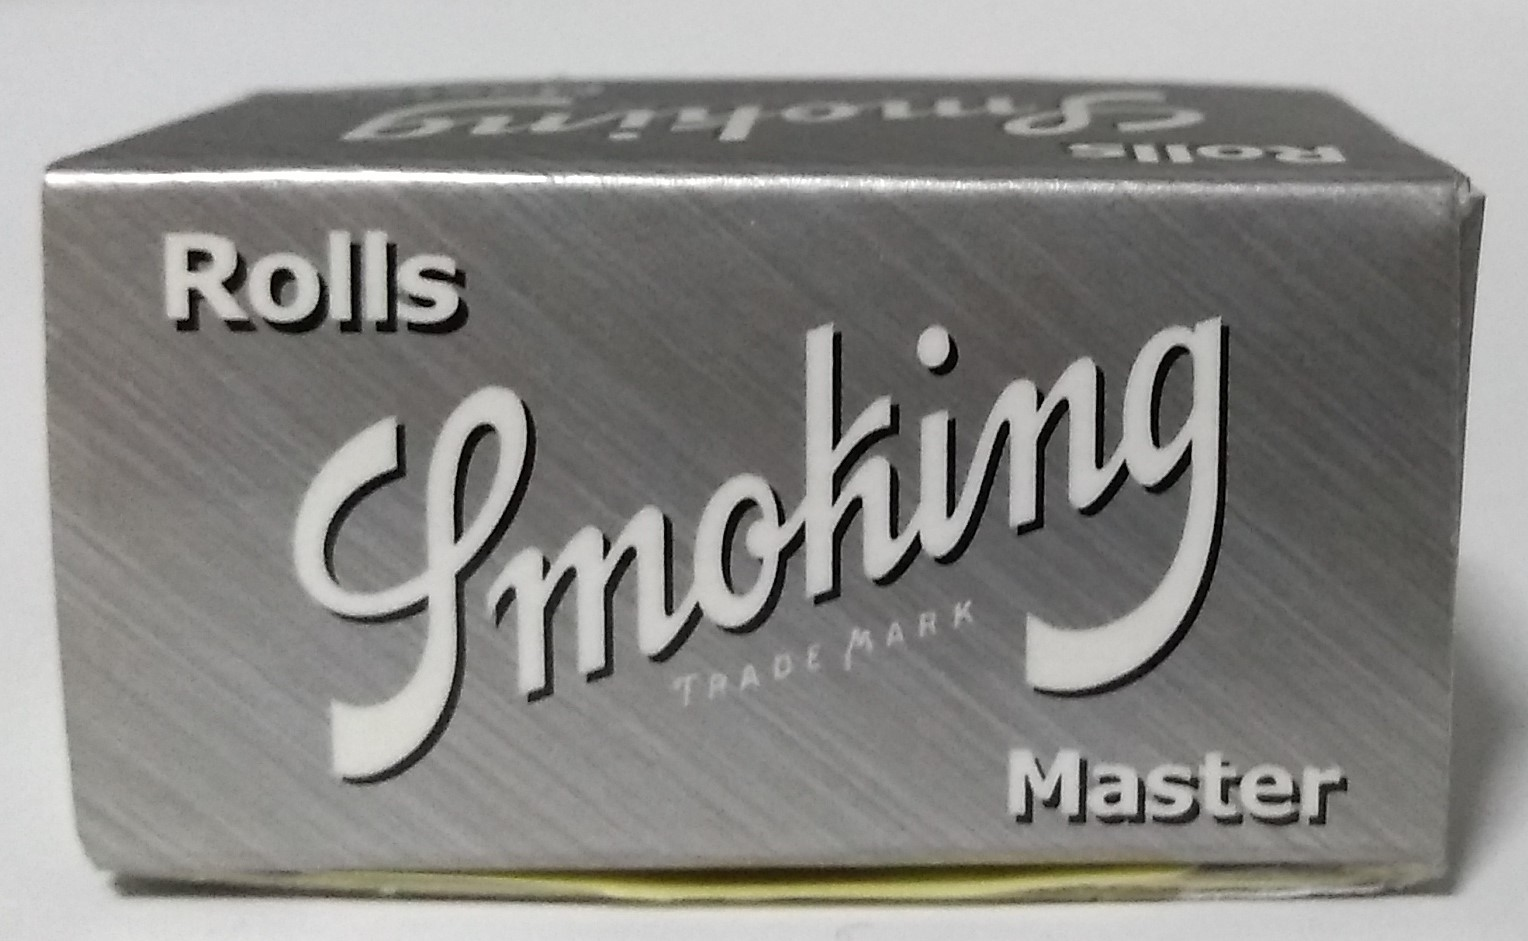 Papel Smoking Master Rolls